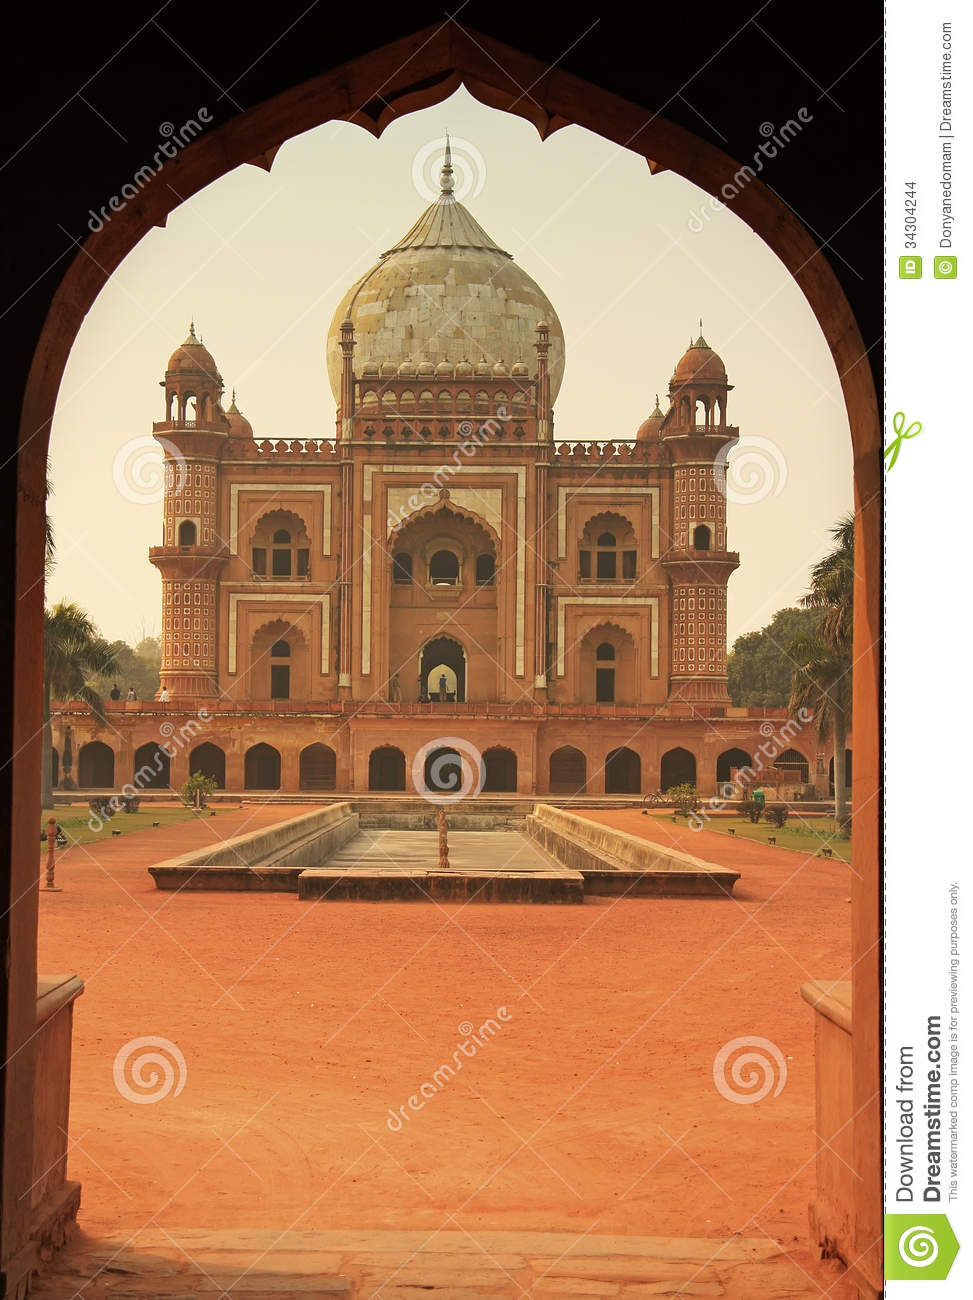 Tomb Of Safdarjung, New Delhi, India Stock Images - Image ...